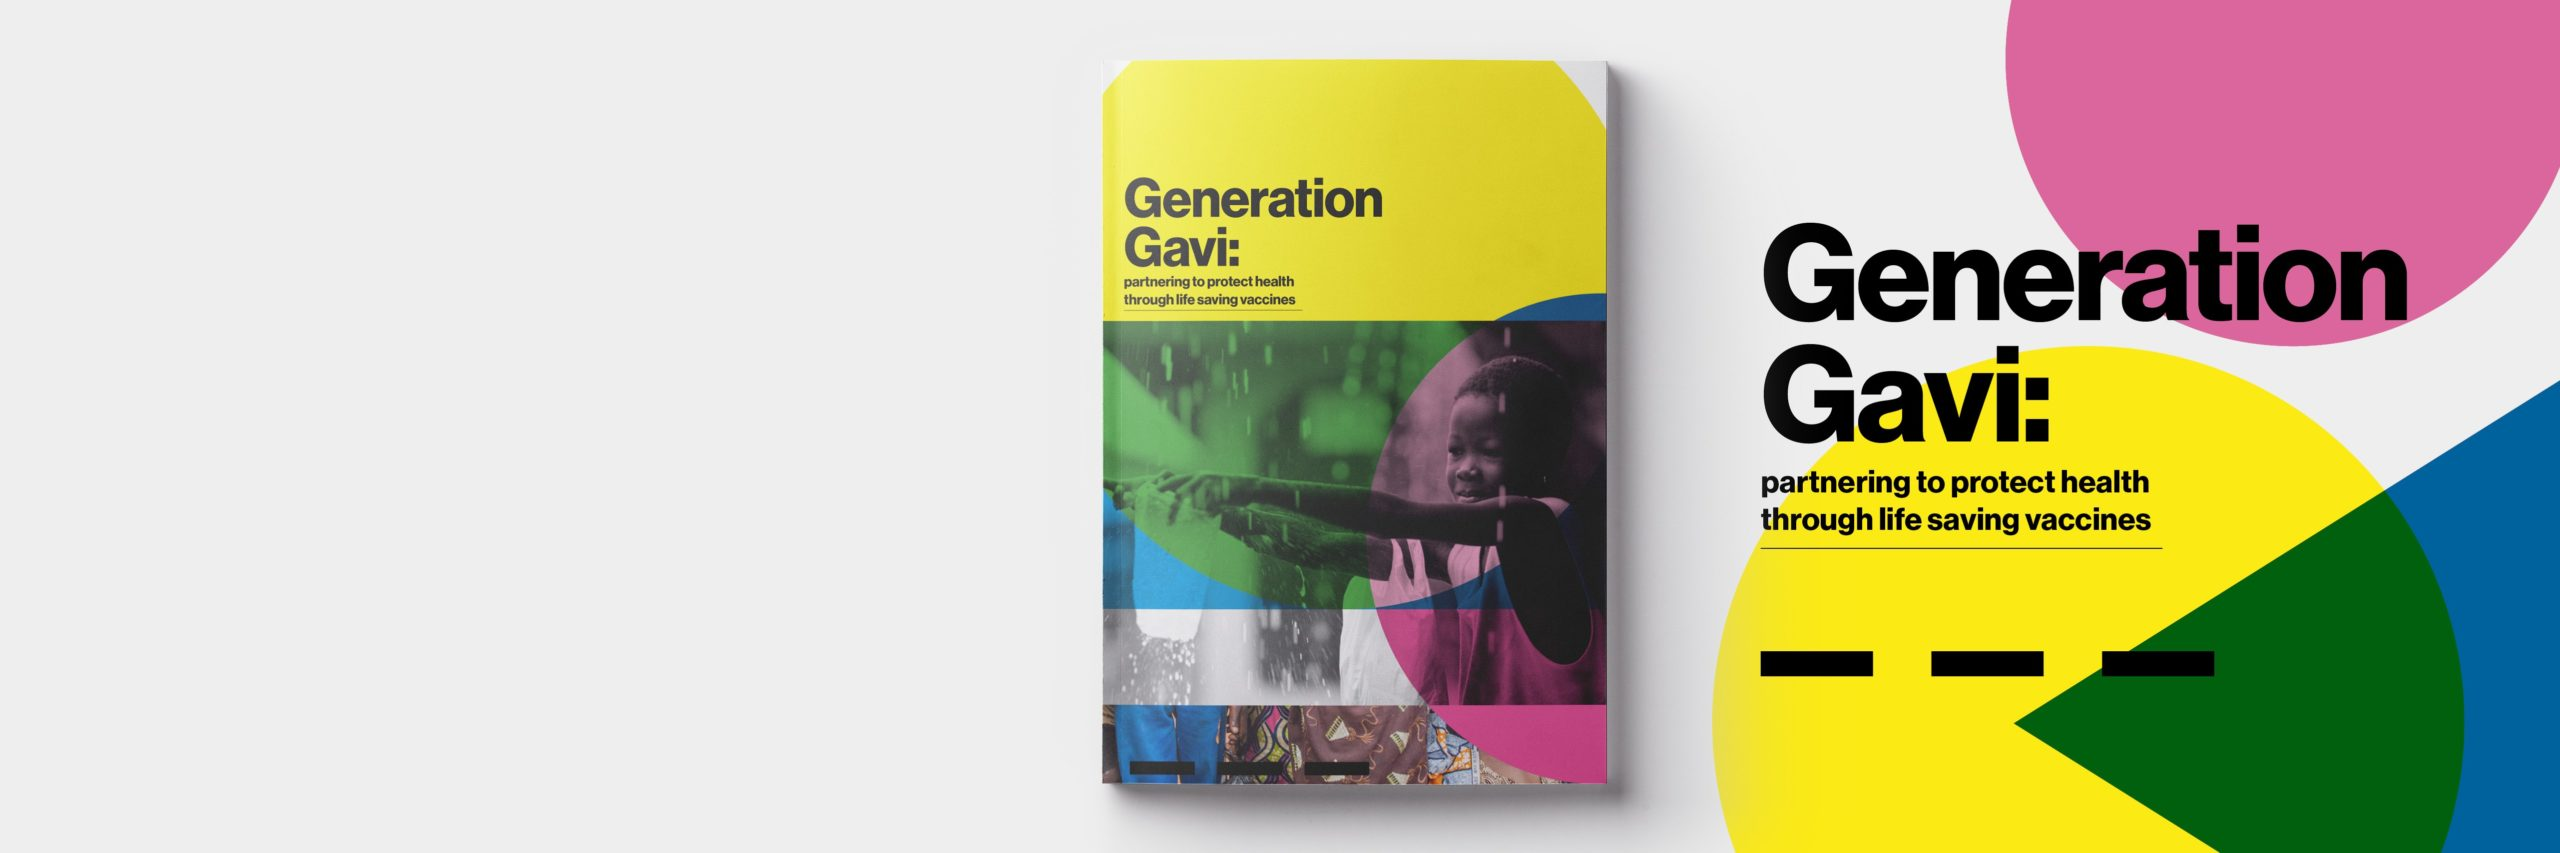 Meet #GenerationGavi